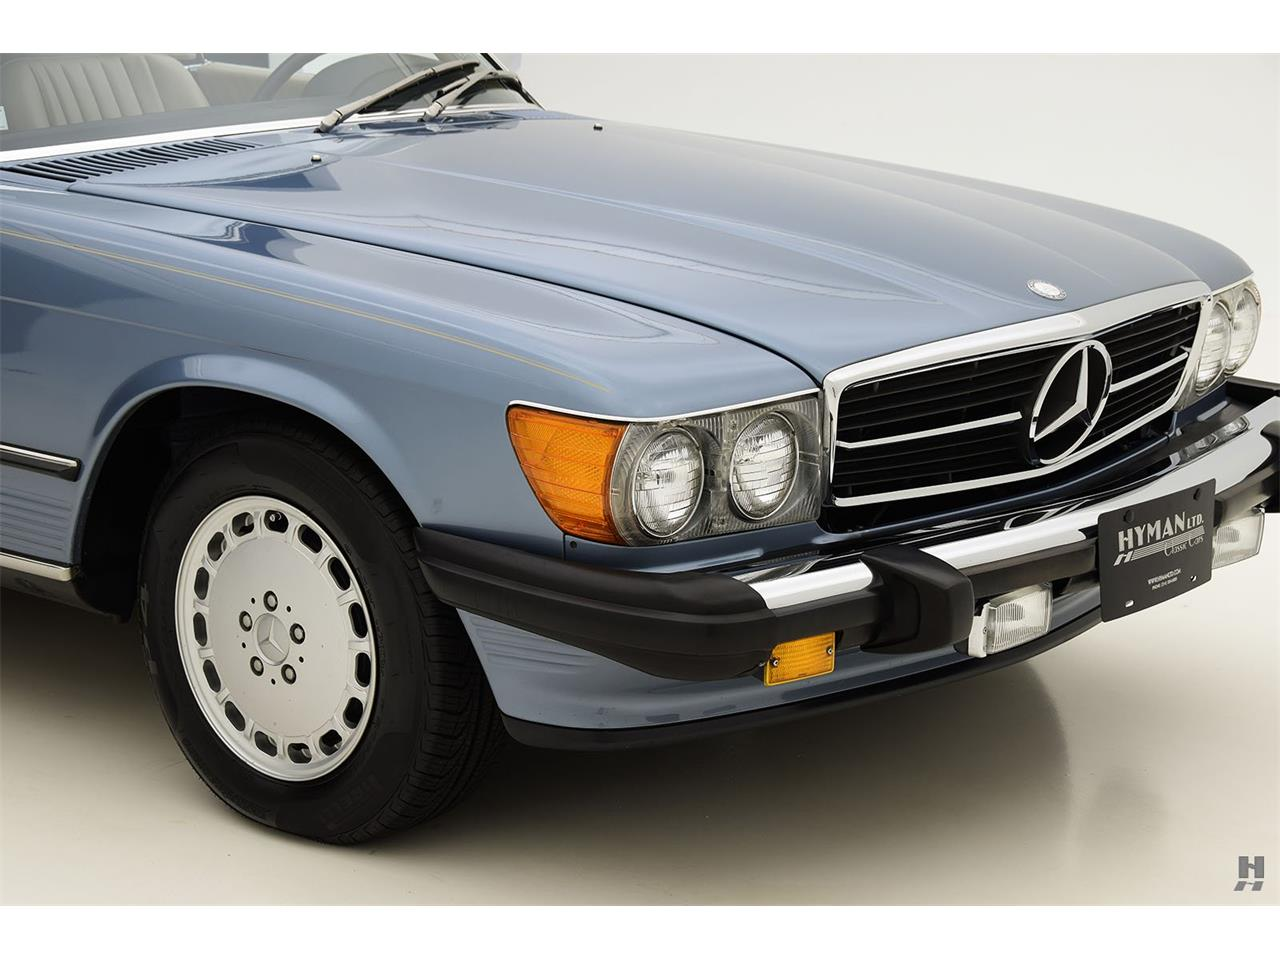 Large Picture of '87 Mercedes-Benz 560SL located in Missouri - $48,500.00 Offered by Hyman Ltd. Classic Cars - LENL